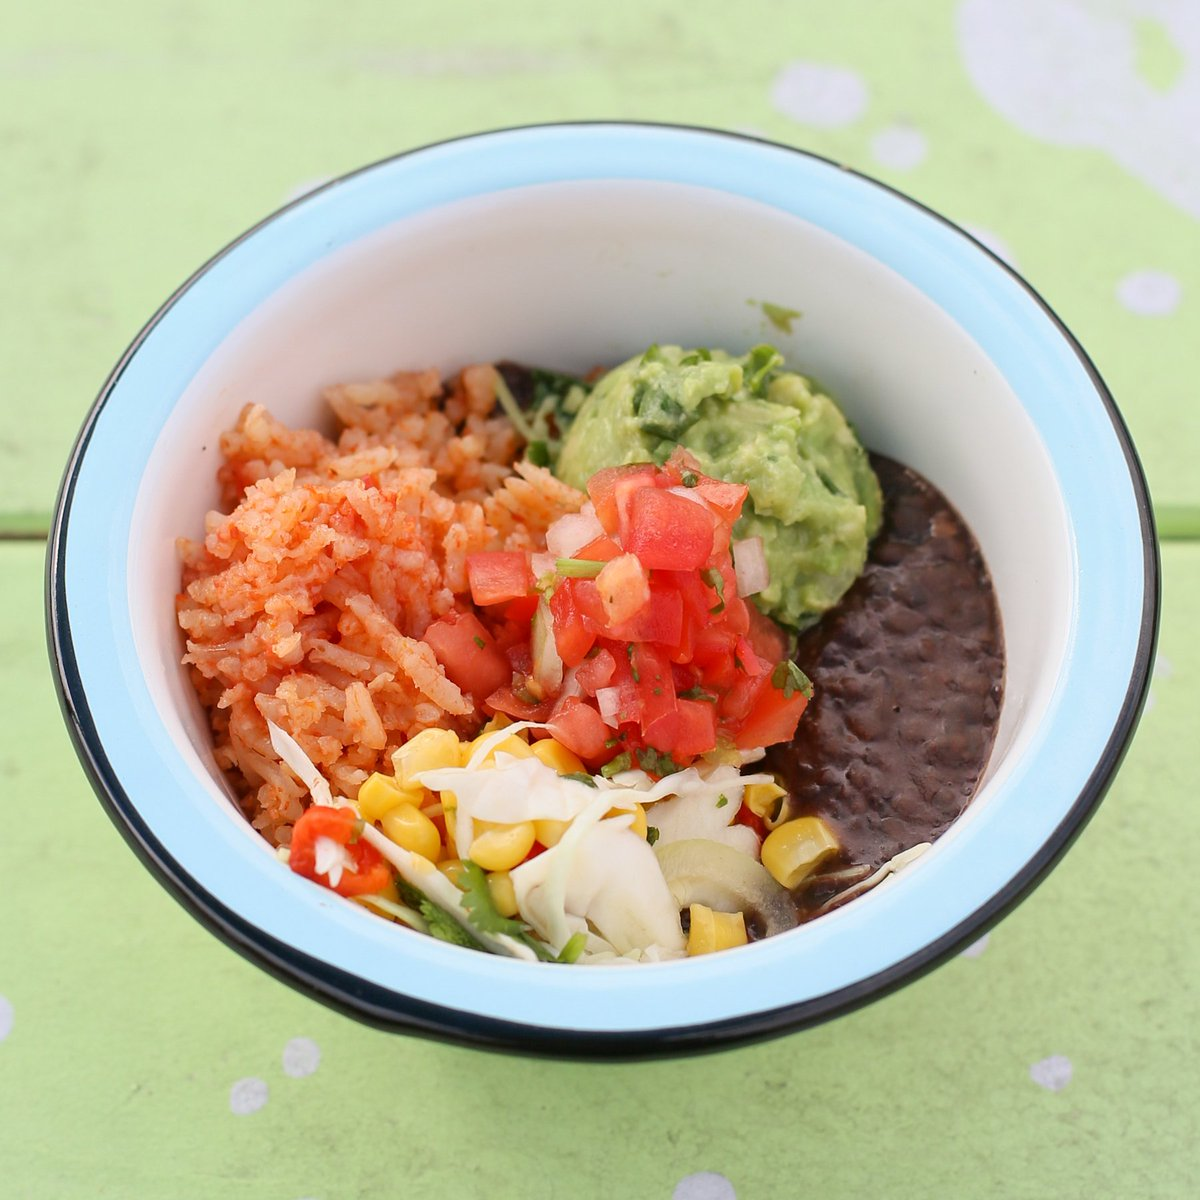 test Twitter Media - We had a blast at Durham Bowls Food Fest dishing up our Black bean & Mexican rice bowl w/Durham guac, a recipe for school lunches developed at The Durham. Look for this bowl – and 9 others from local chef and school nutrition manager teams – on lunch menus around the district! https://t.co/lYpO3Amnm9